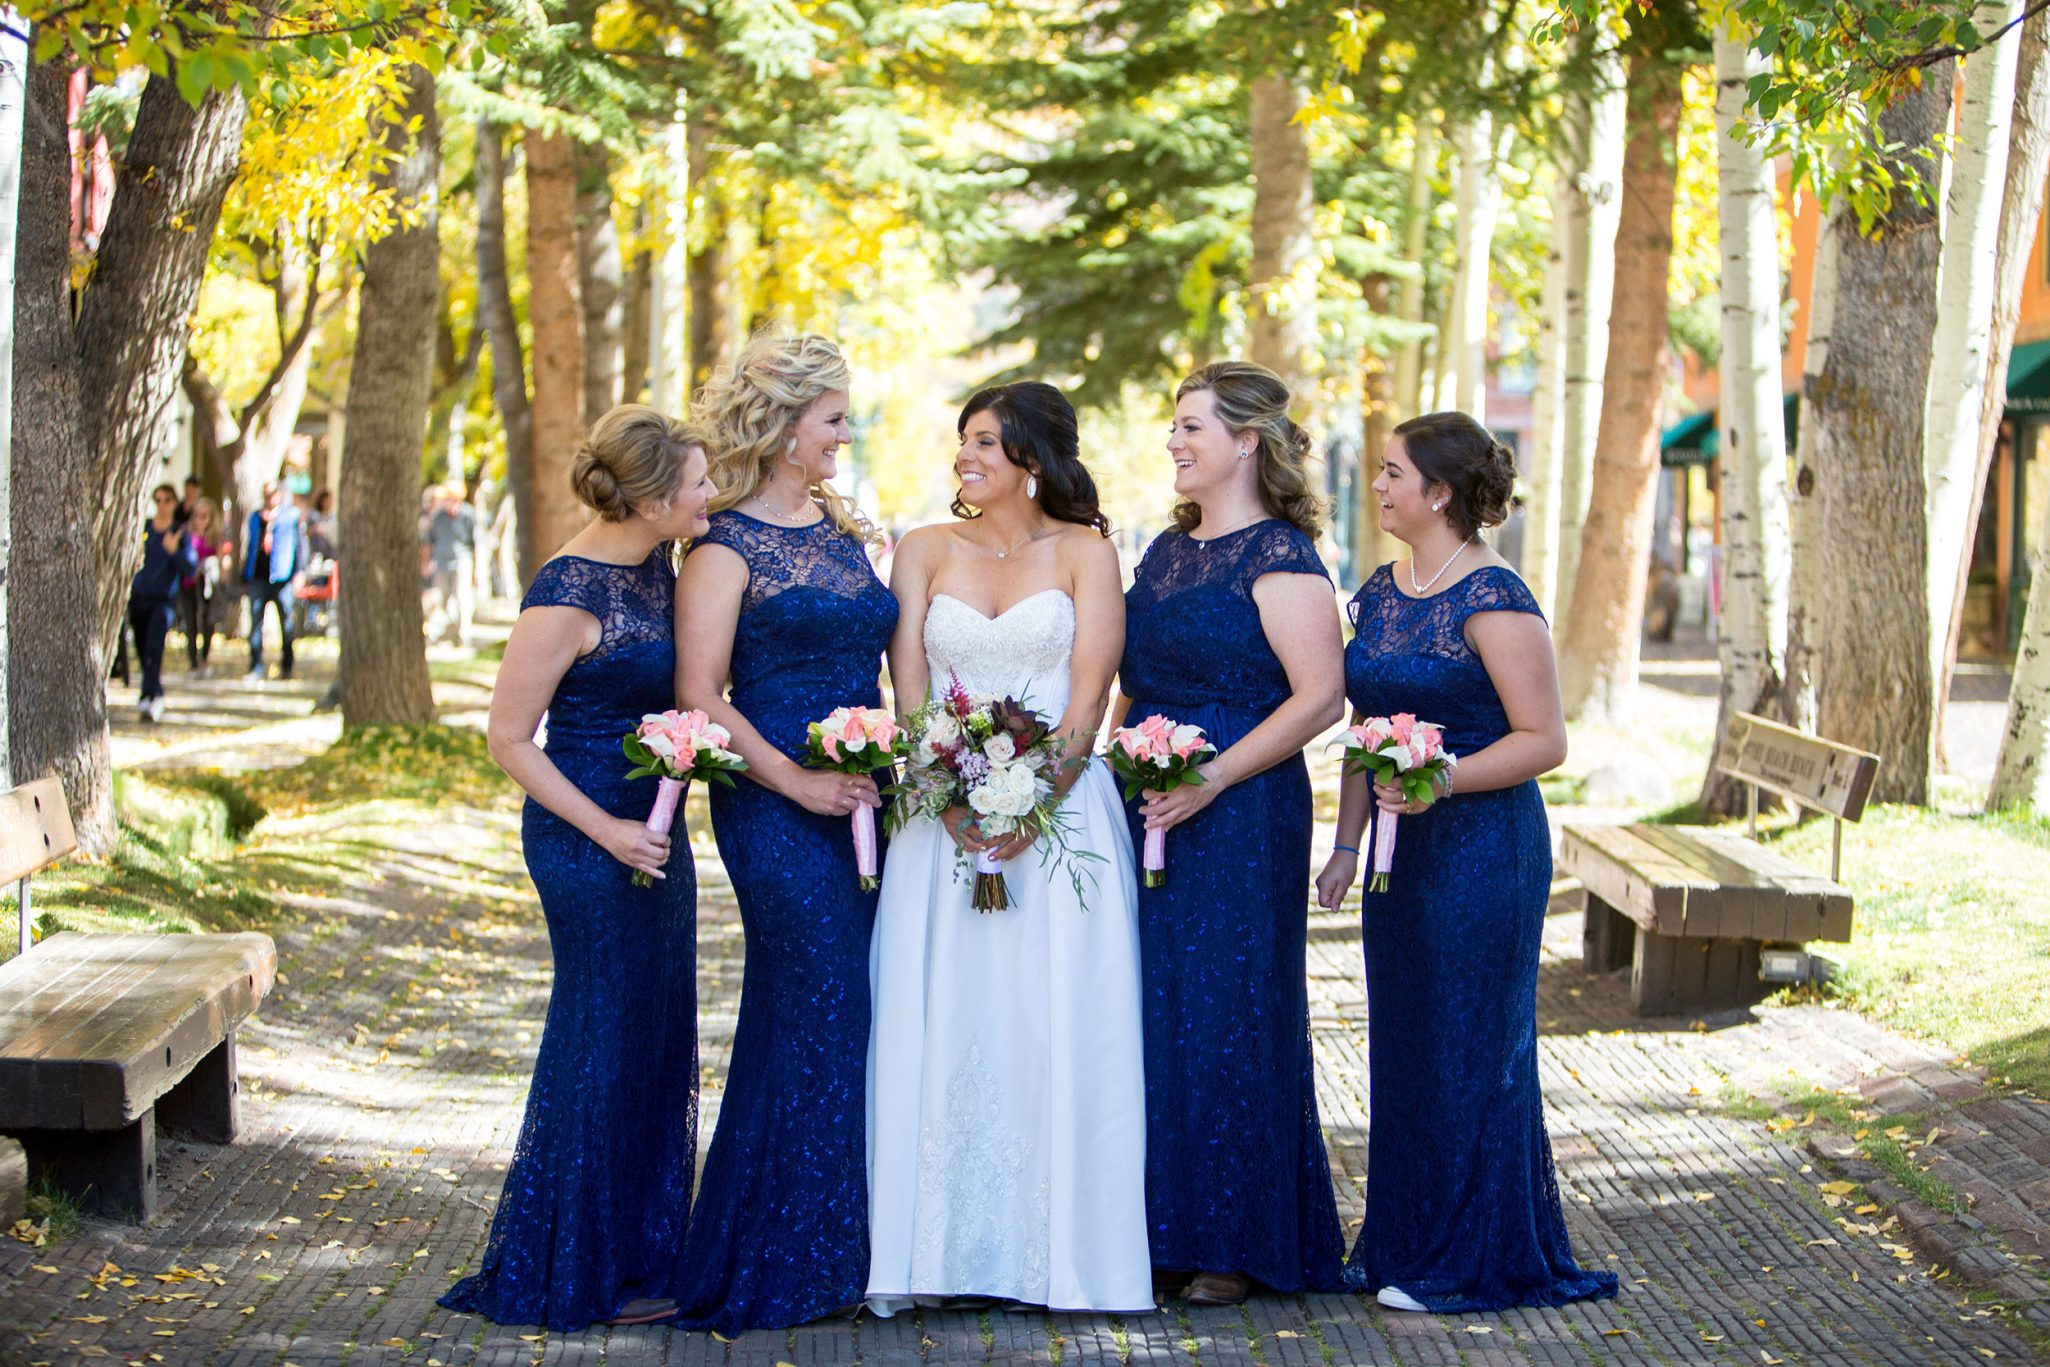 Bridesmaids | A Fall Aspen Wedding at T Lazy 7 Ranch, Colorado